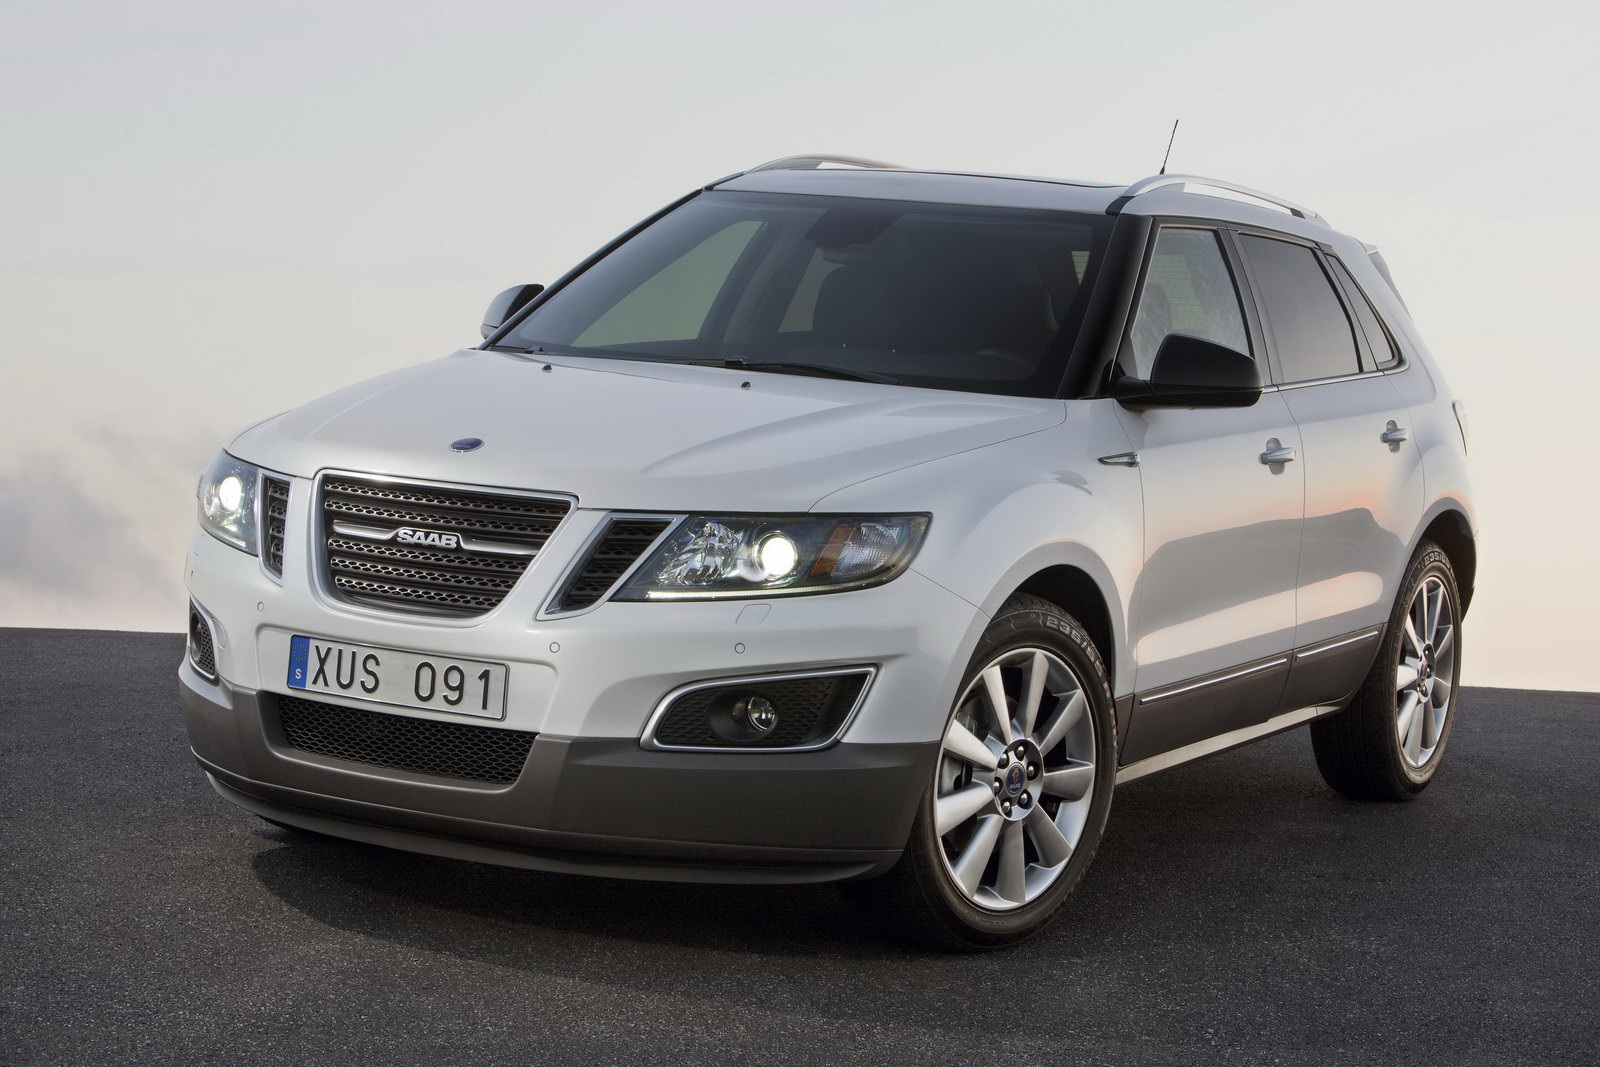 2011 Saab 9 4X 14 2011 Saab 9 4X SUV   Photos, Specifications, Review, Price